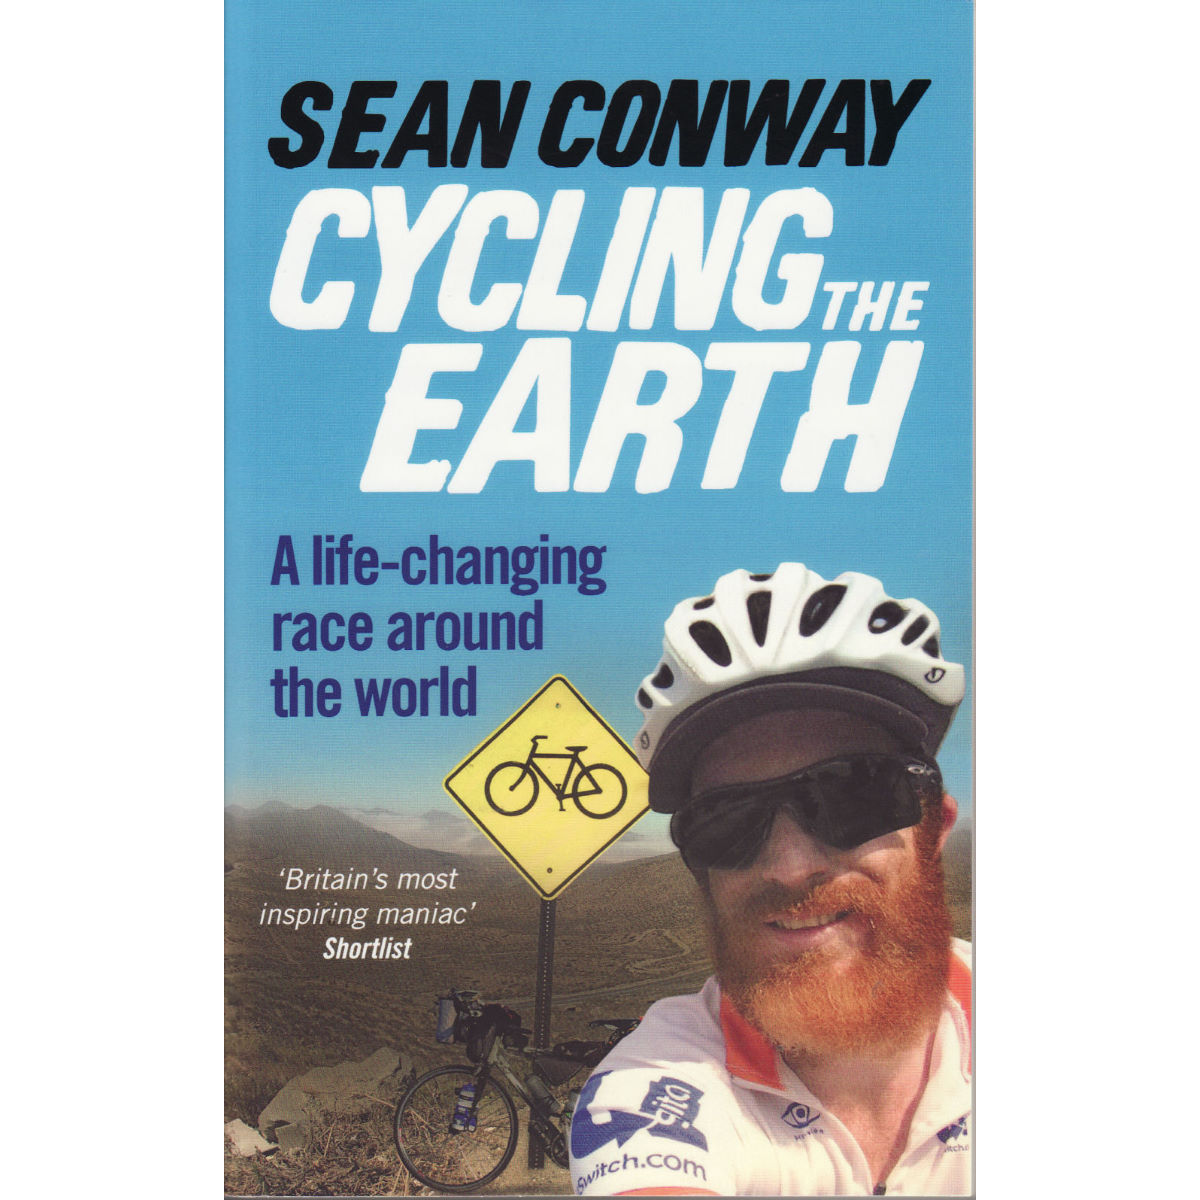 Livre Cordee Cycling the Earth Sean Conway - One Size Neutral